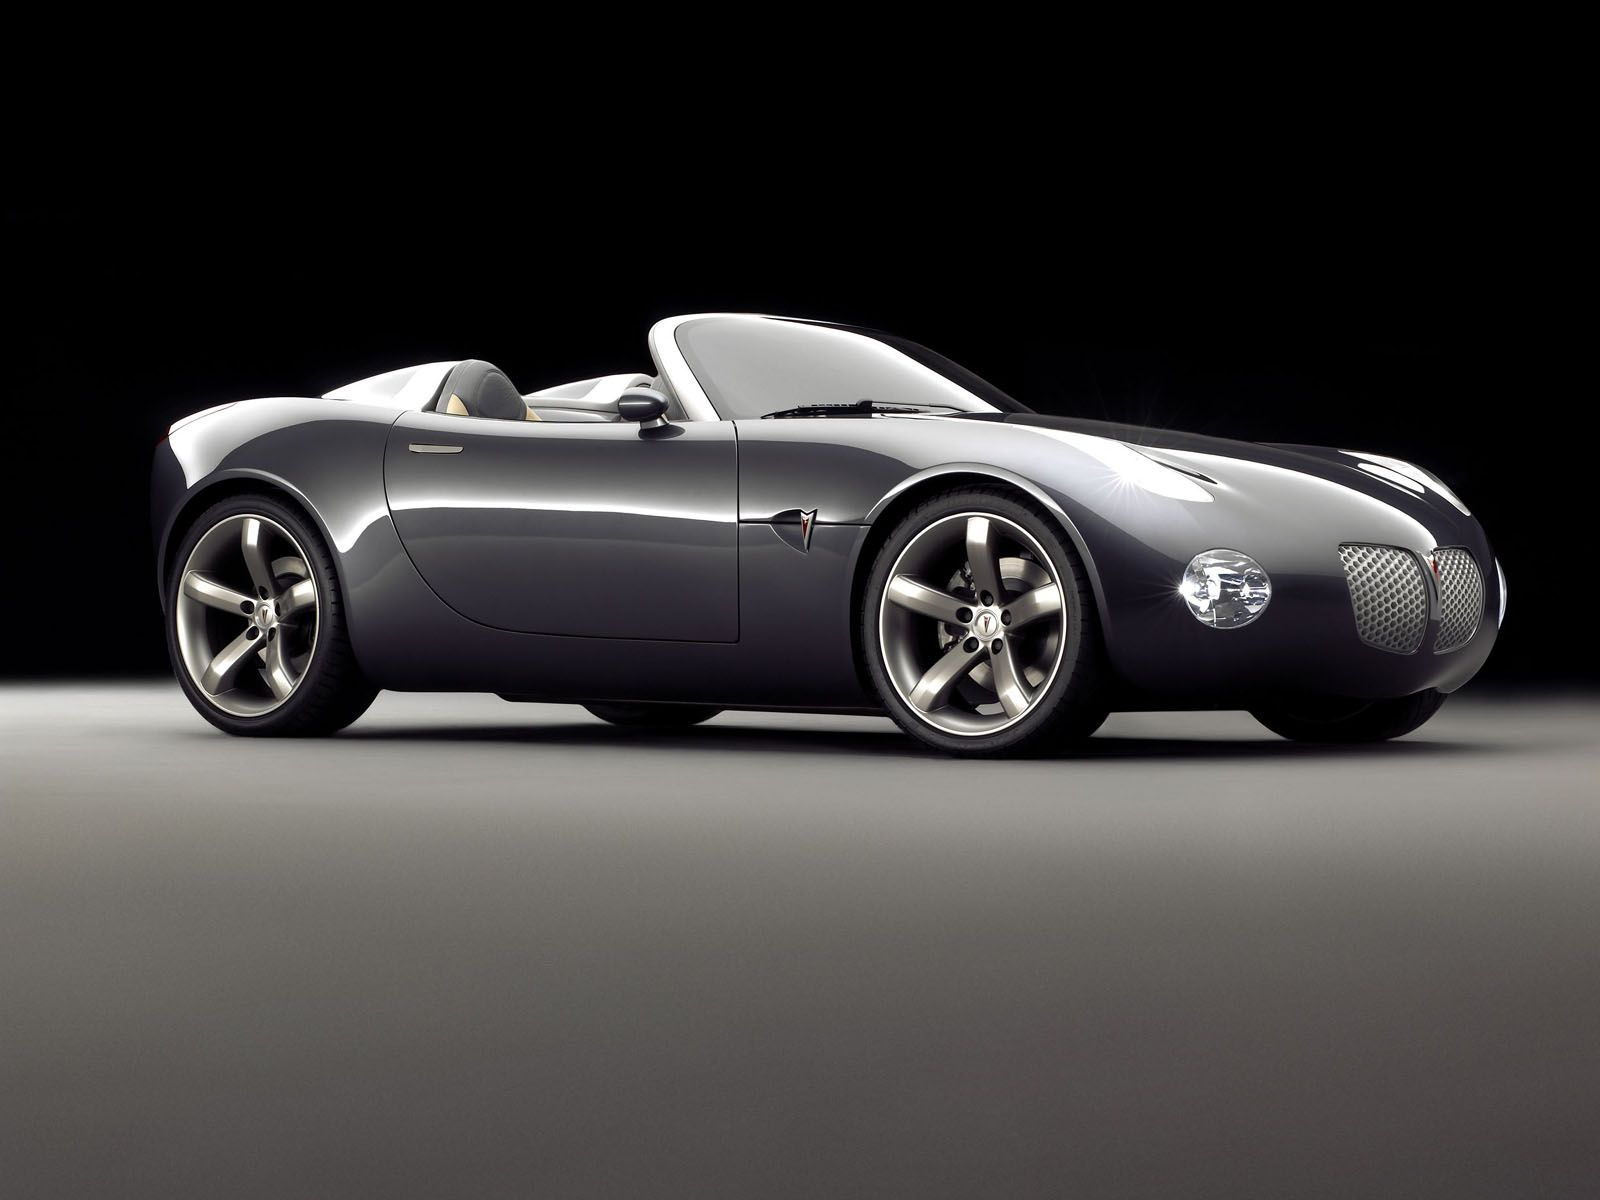 You can vote for this Pontiac Solstice photo